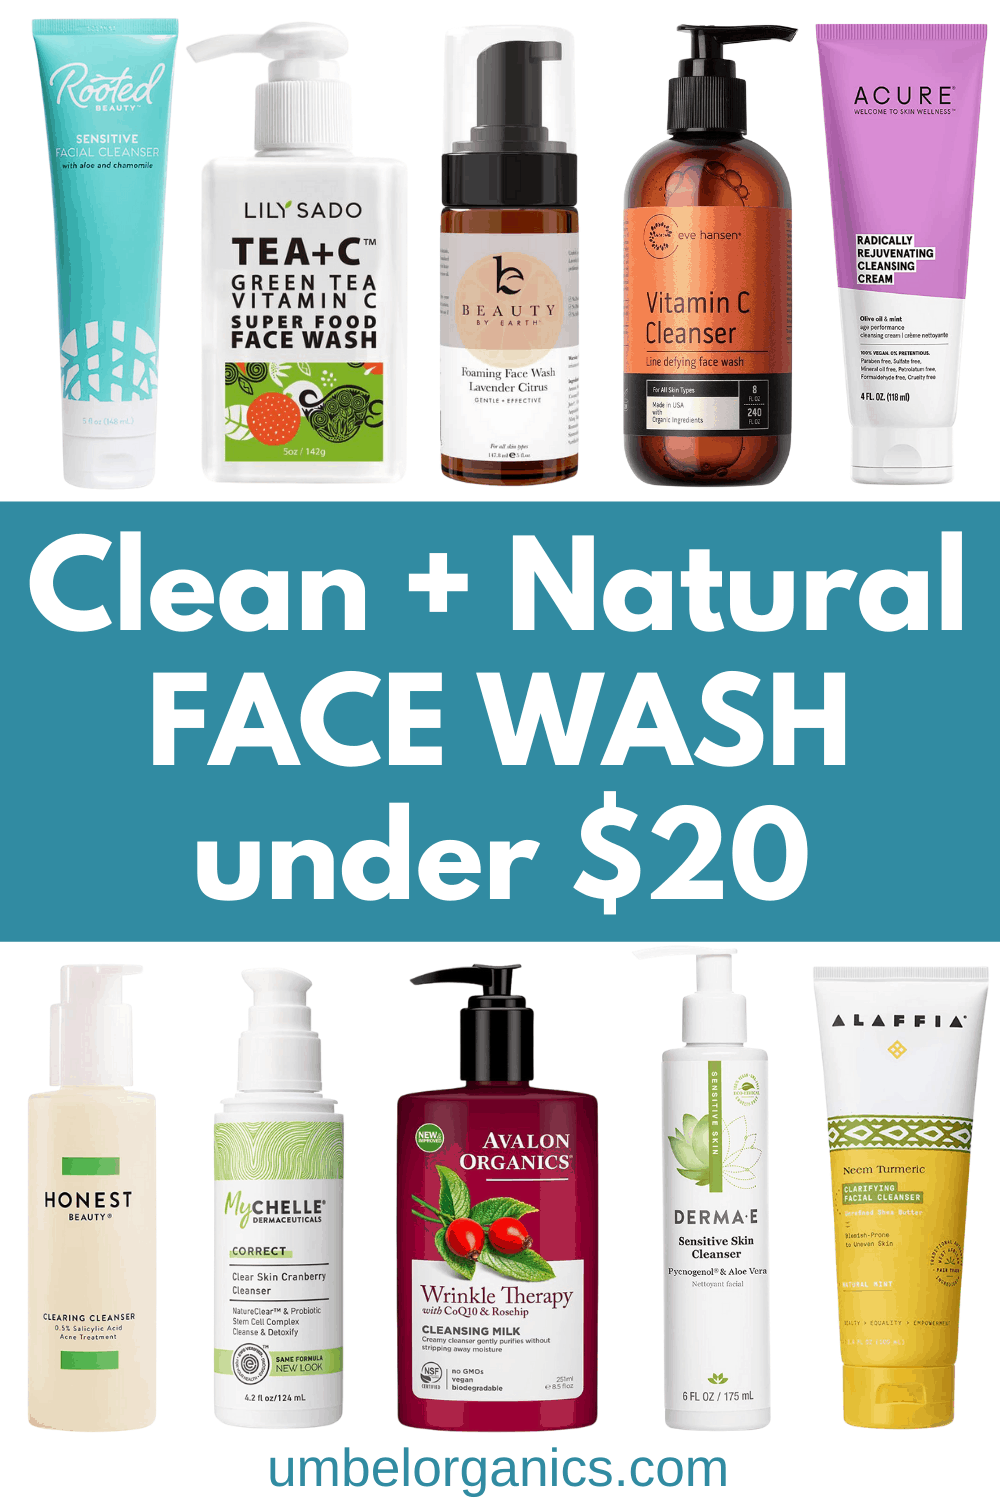 10 Brands of Natural Face Wash